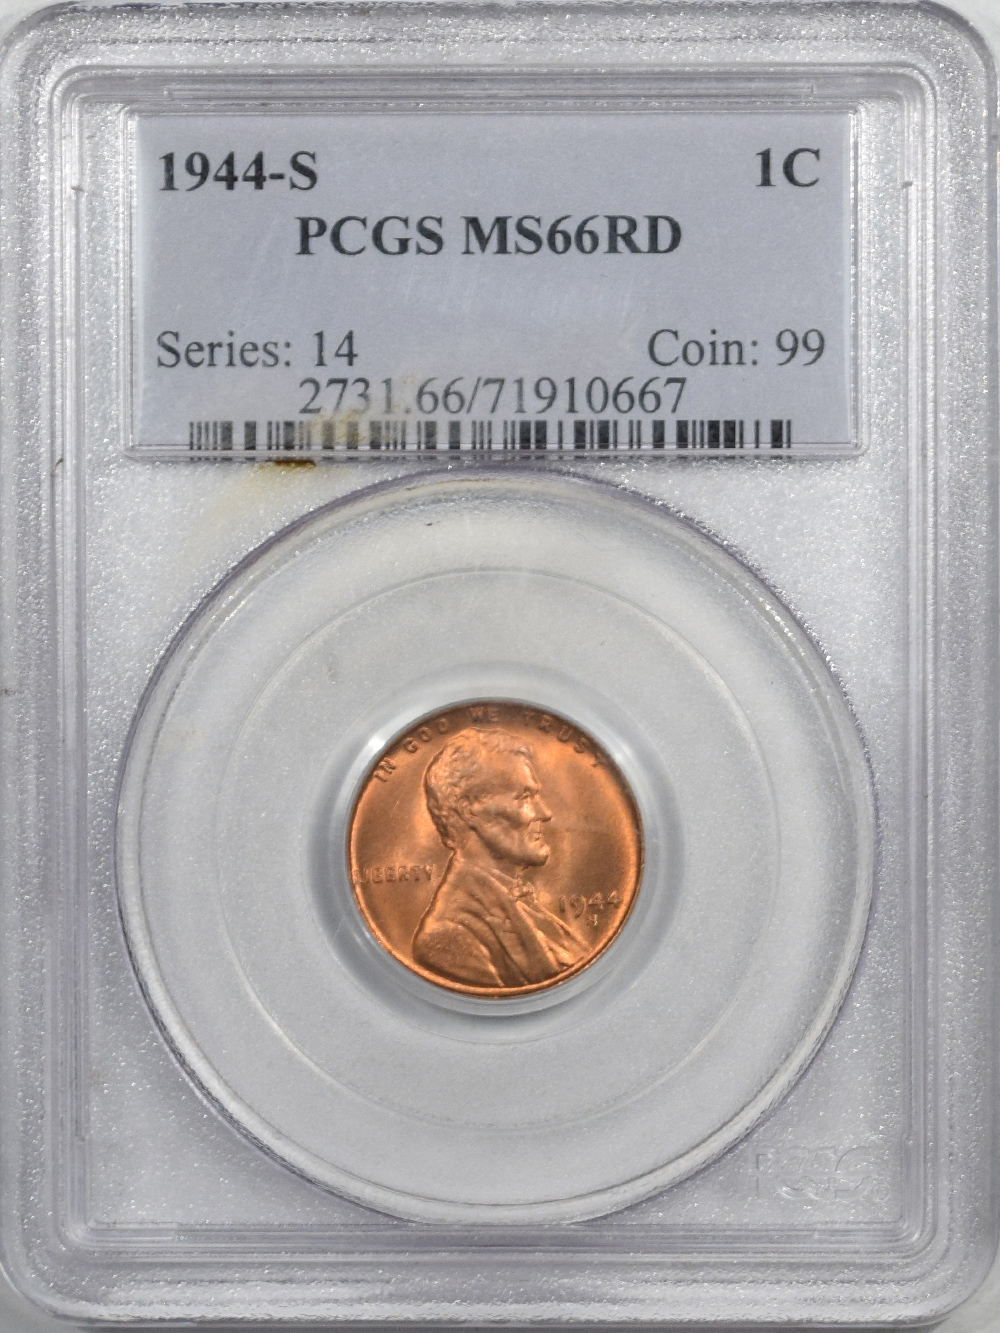 New Certified Coins 1945 LINCOLN CENT – PCGS MS-66 RD